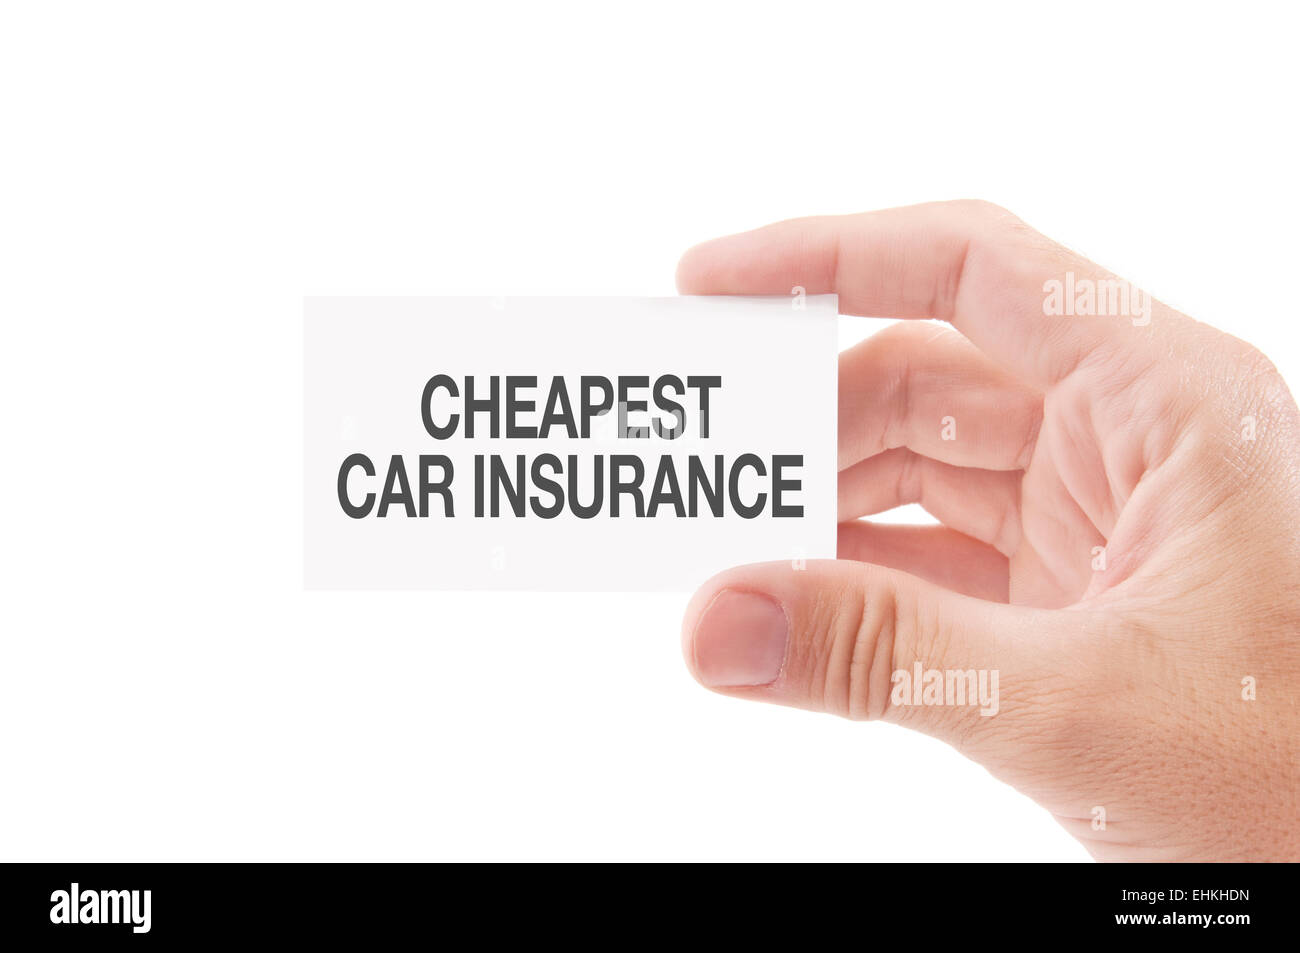 Vehicle Insurance Agent Holding Business Card with Cheapest Car ...